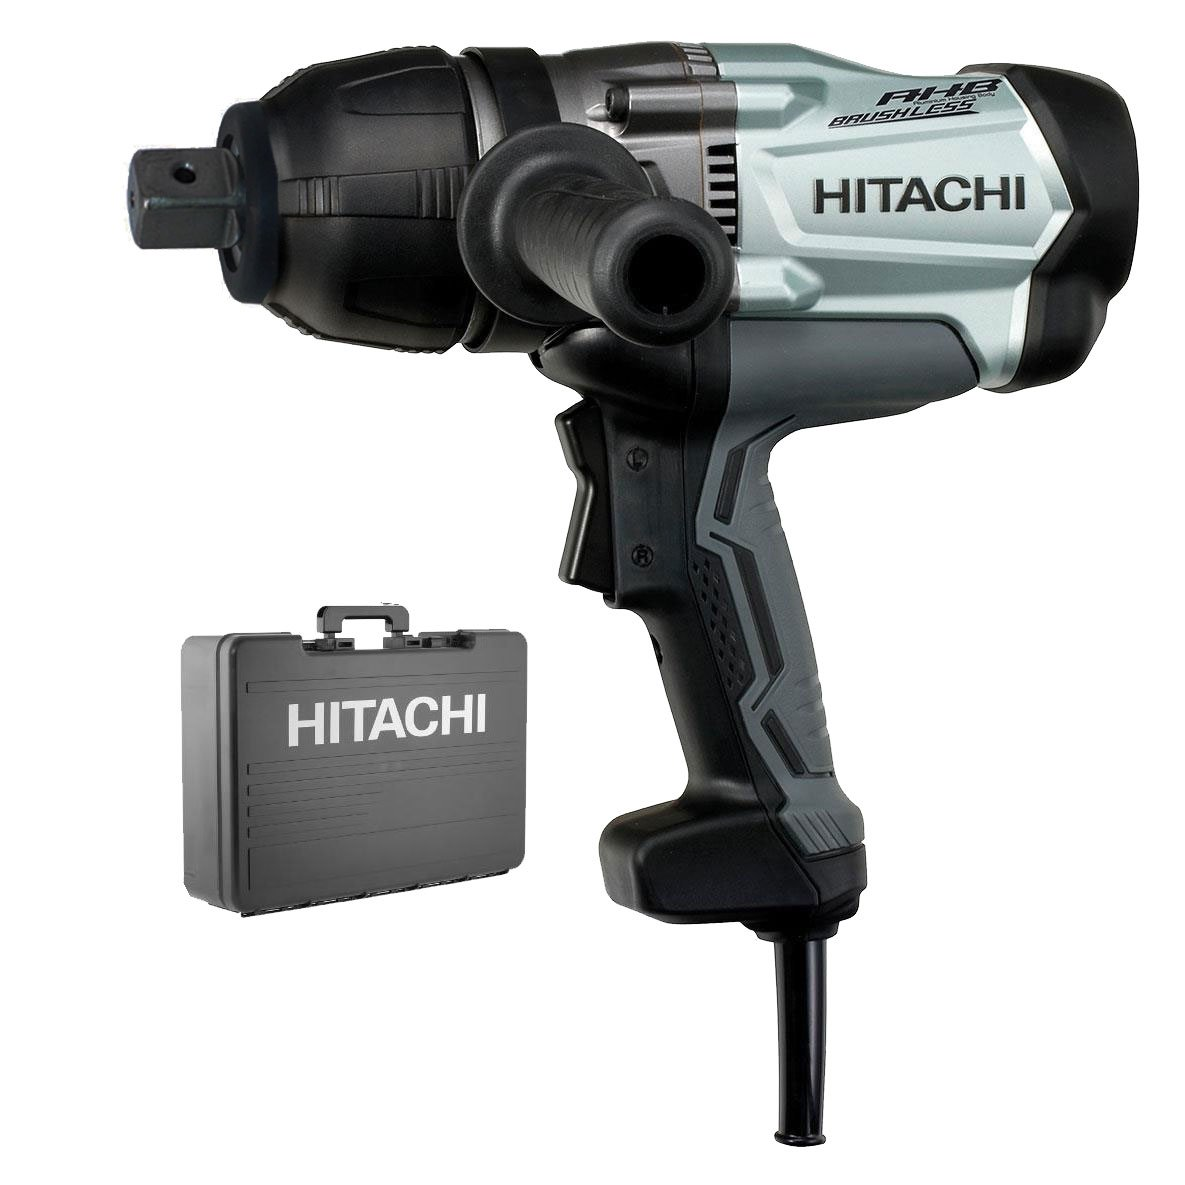 Hitachi WR25SE 1'' Square Drive AC Brushless Motor Impact Wrench,